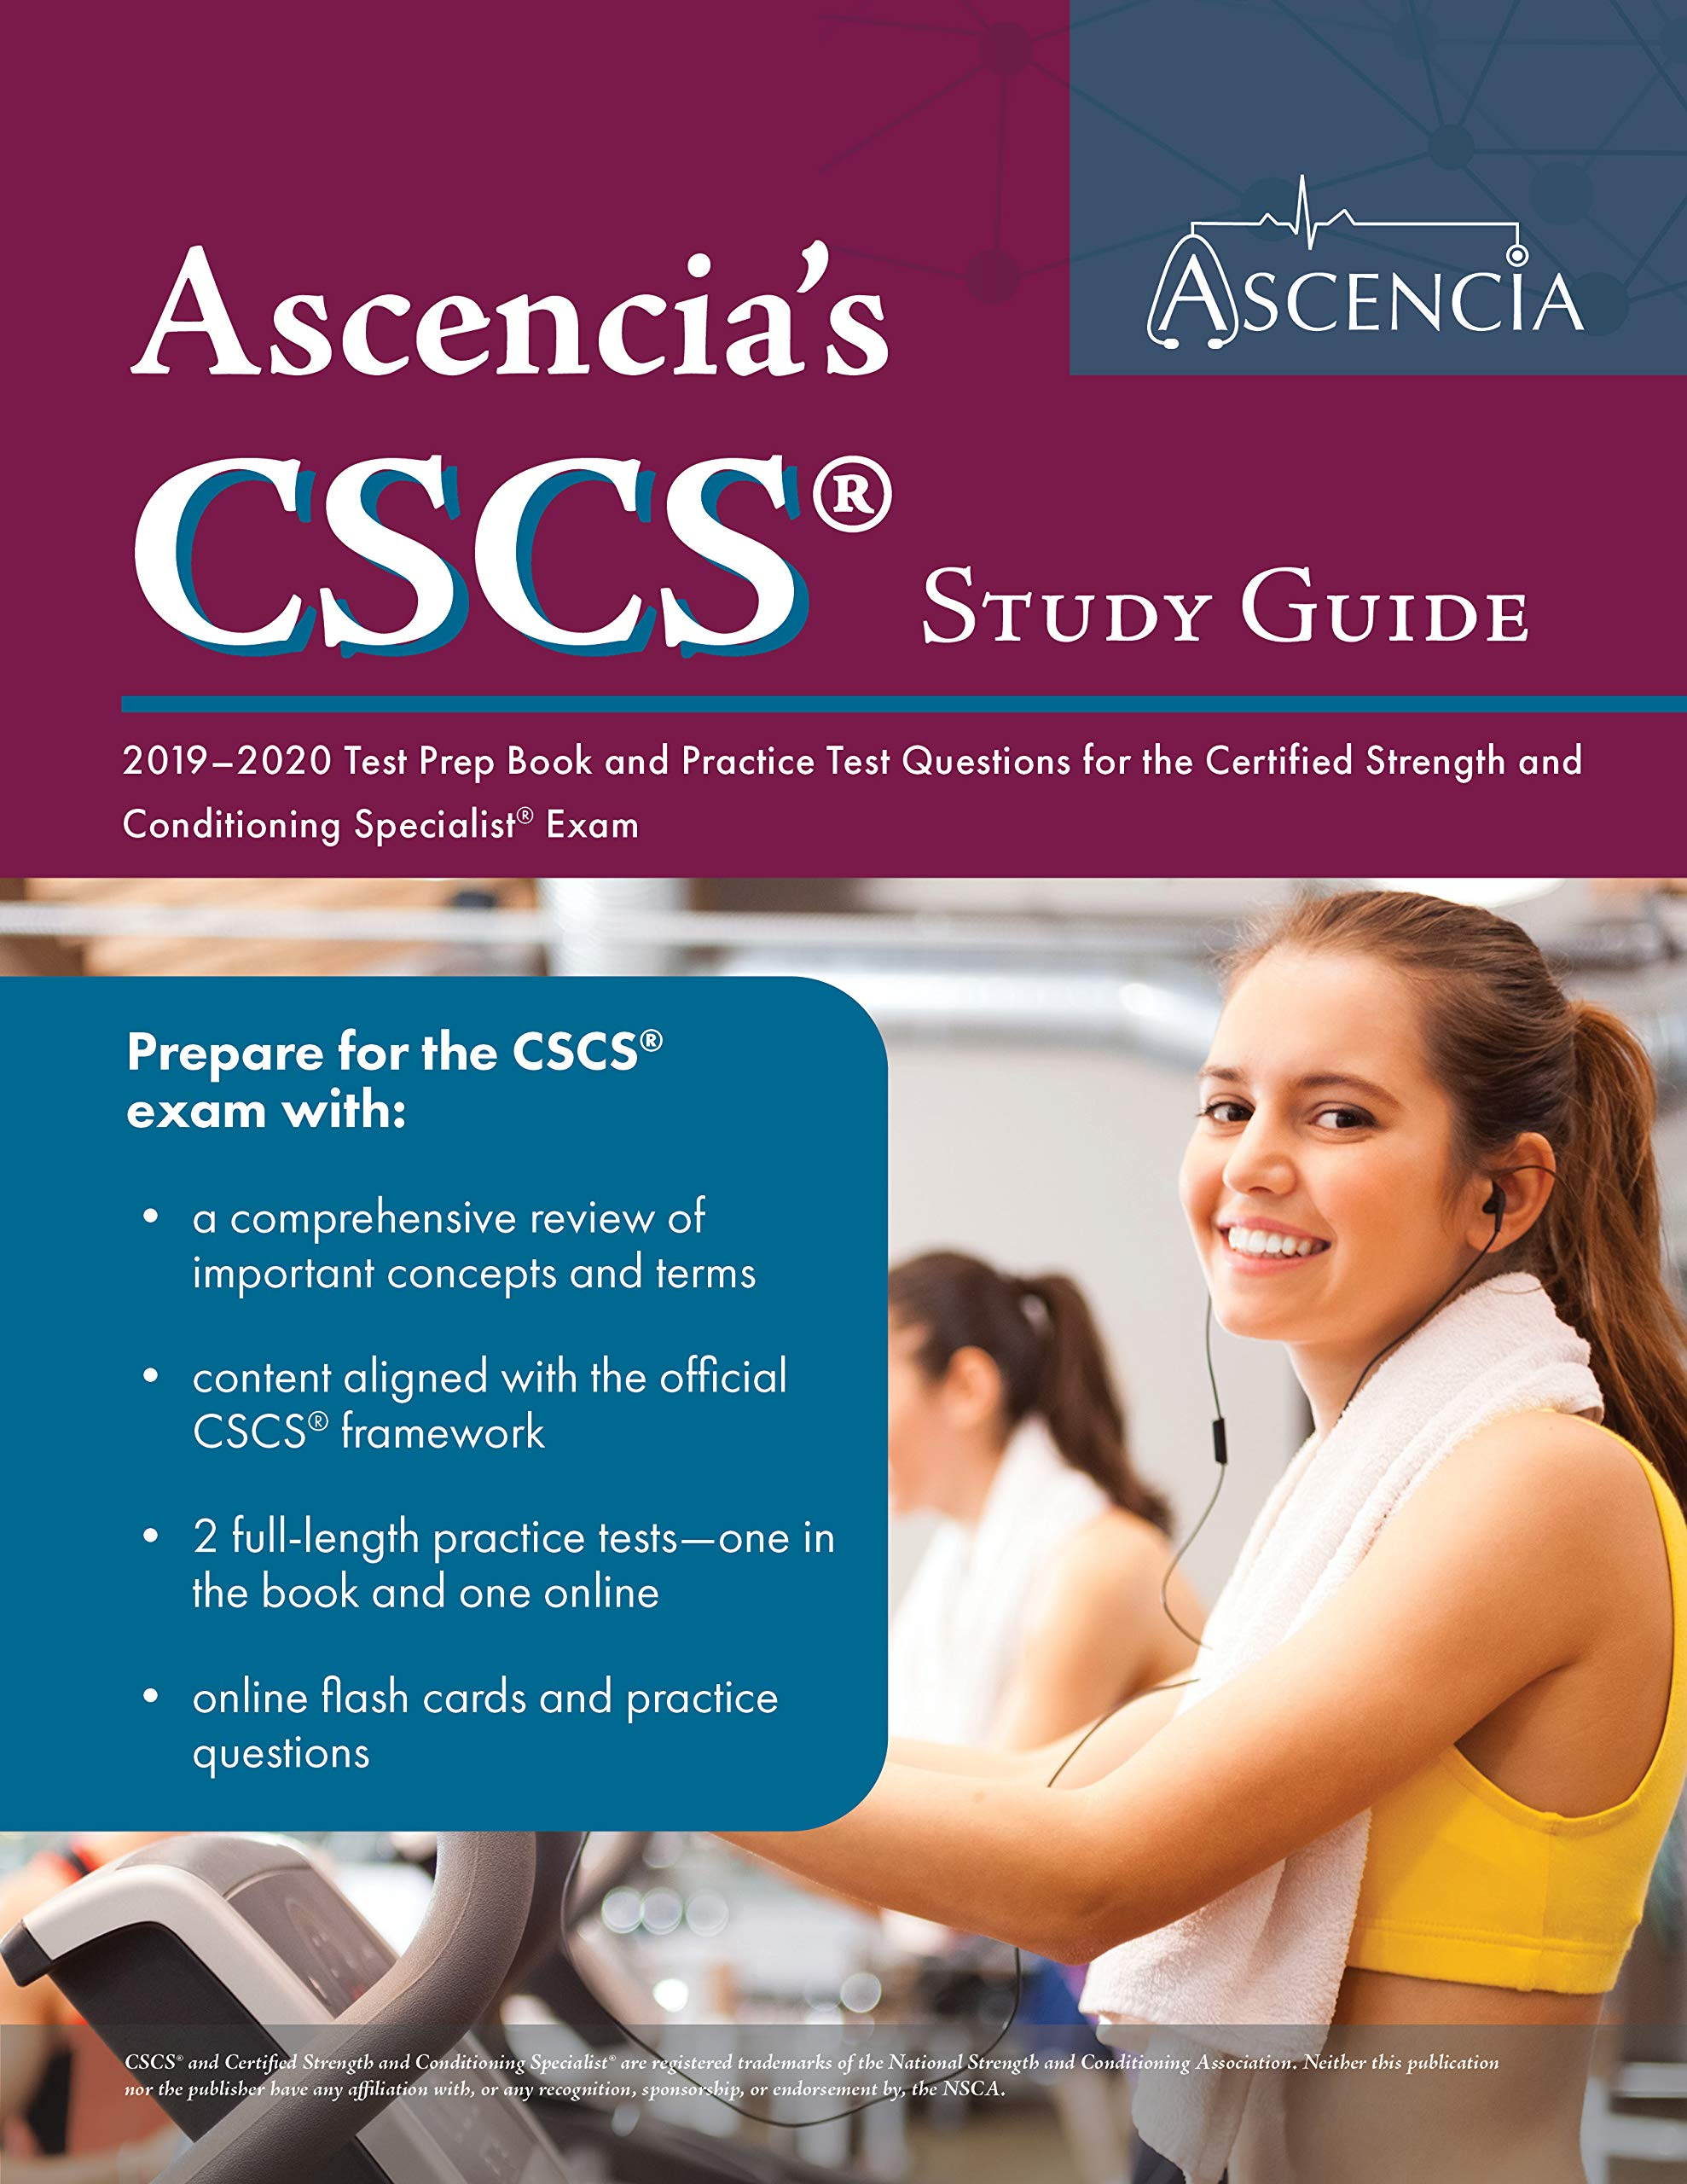 CSCS Study Guide 2019-2020: CSCS Test Prep Book and Practice Test Questions for the Certified Strength and Conditioning Specialist Exam